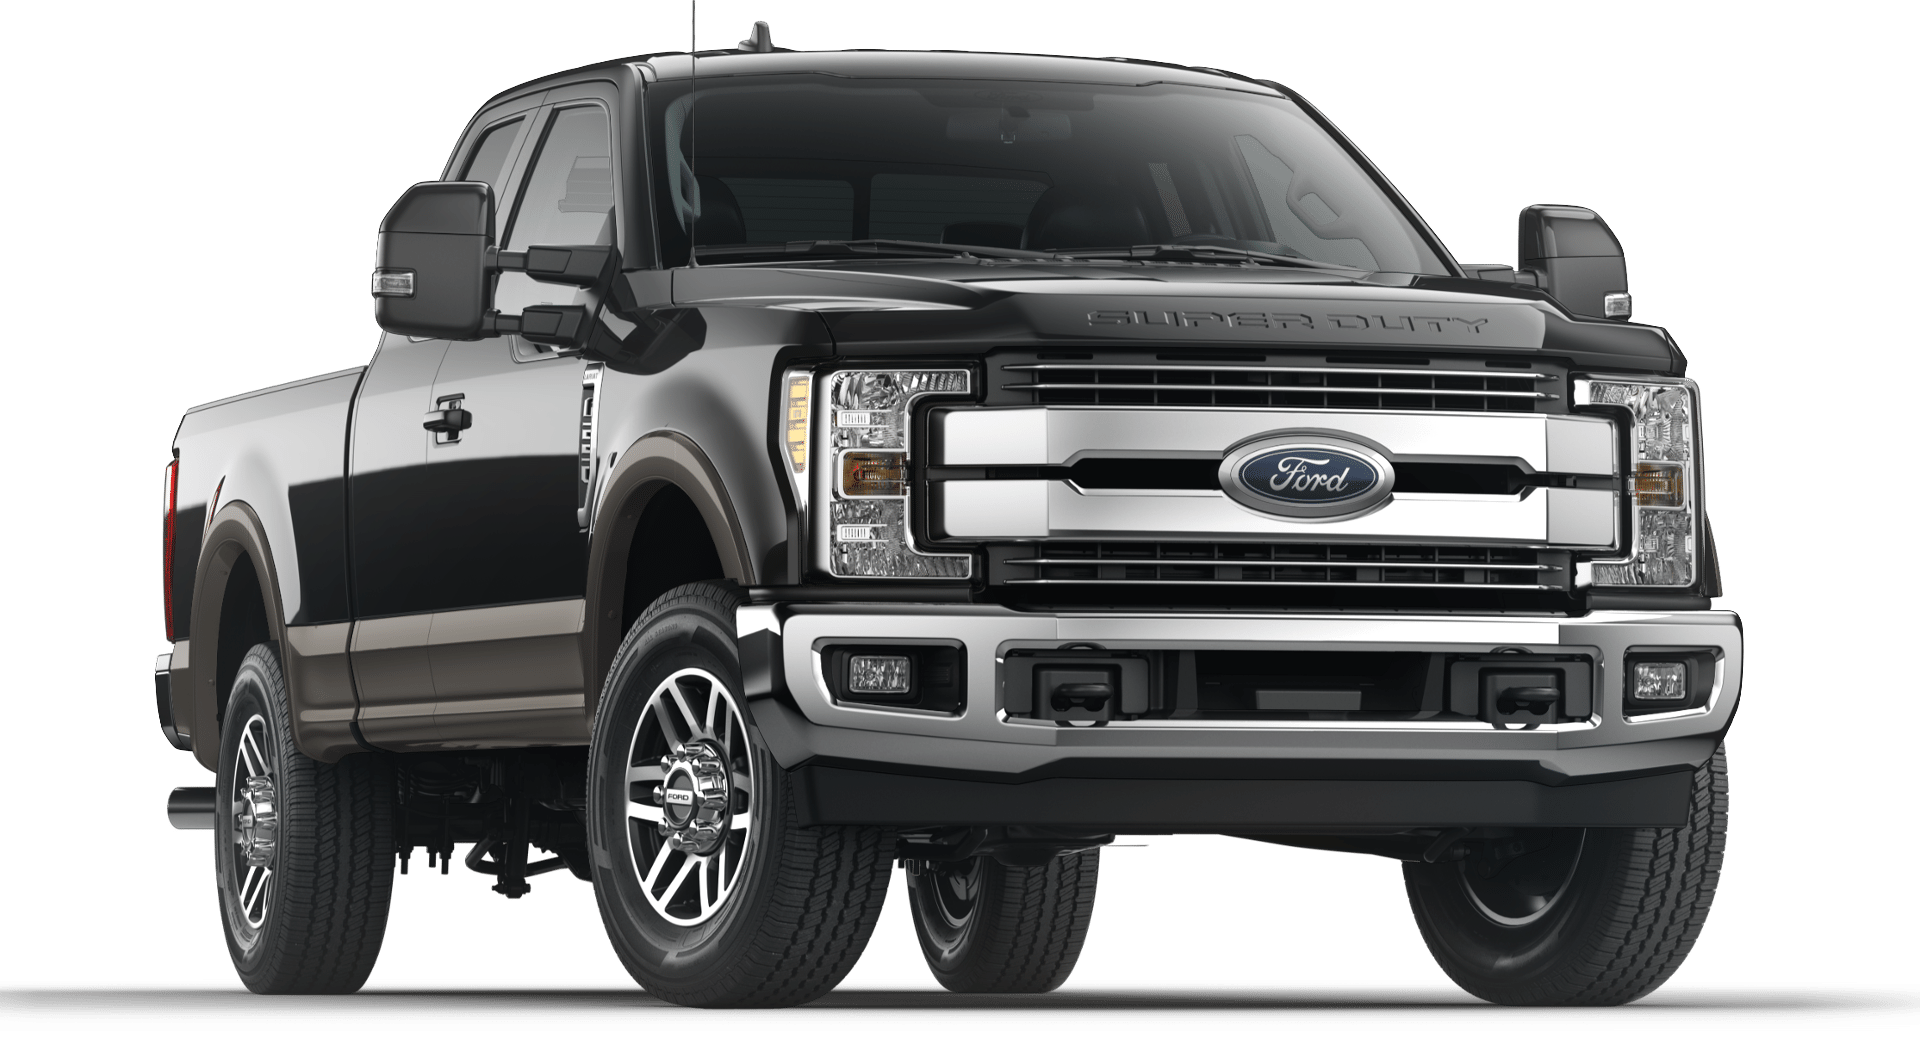 2019 Blue Lariat Ford F-250